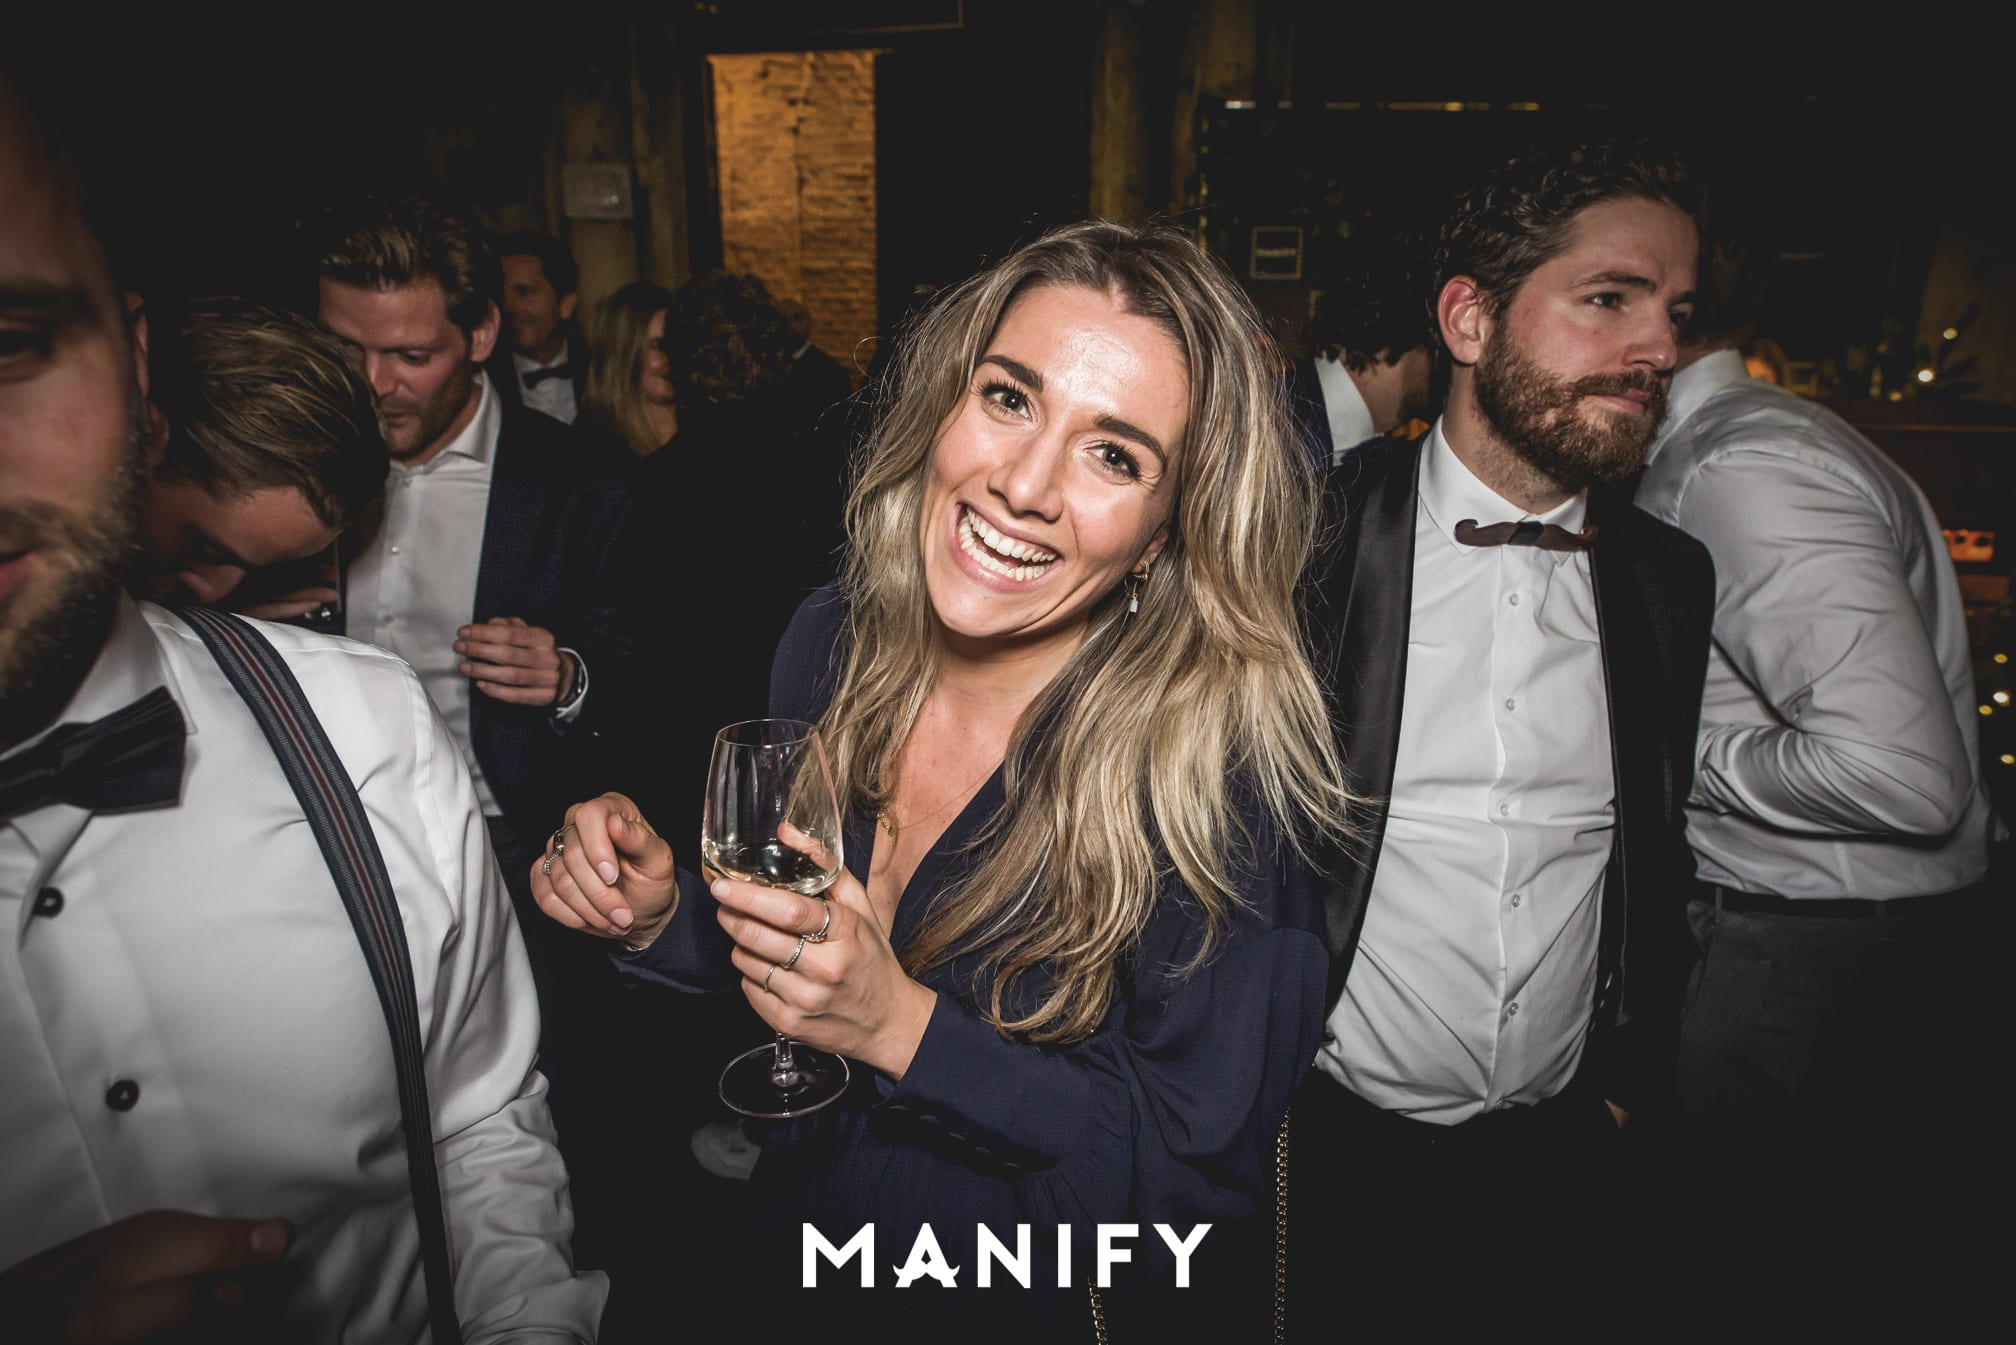 MANIFY_Out_of_office-Orangerie-06-12-19_WM-93-manify